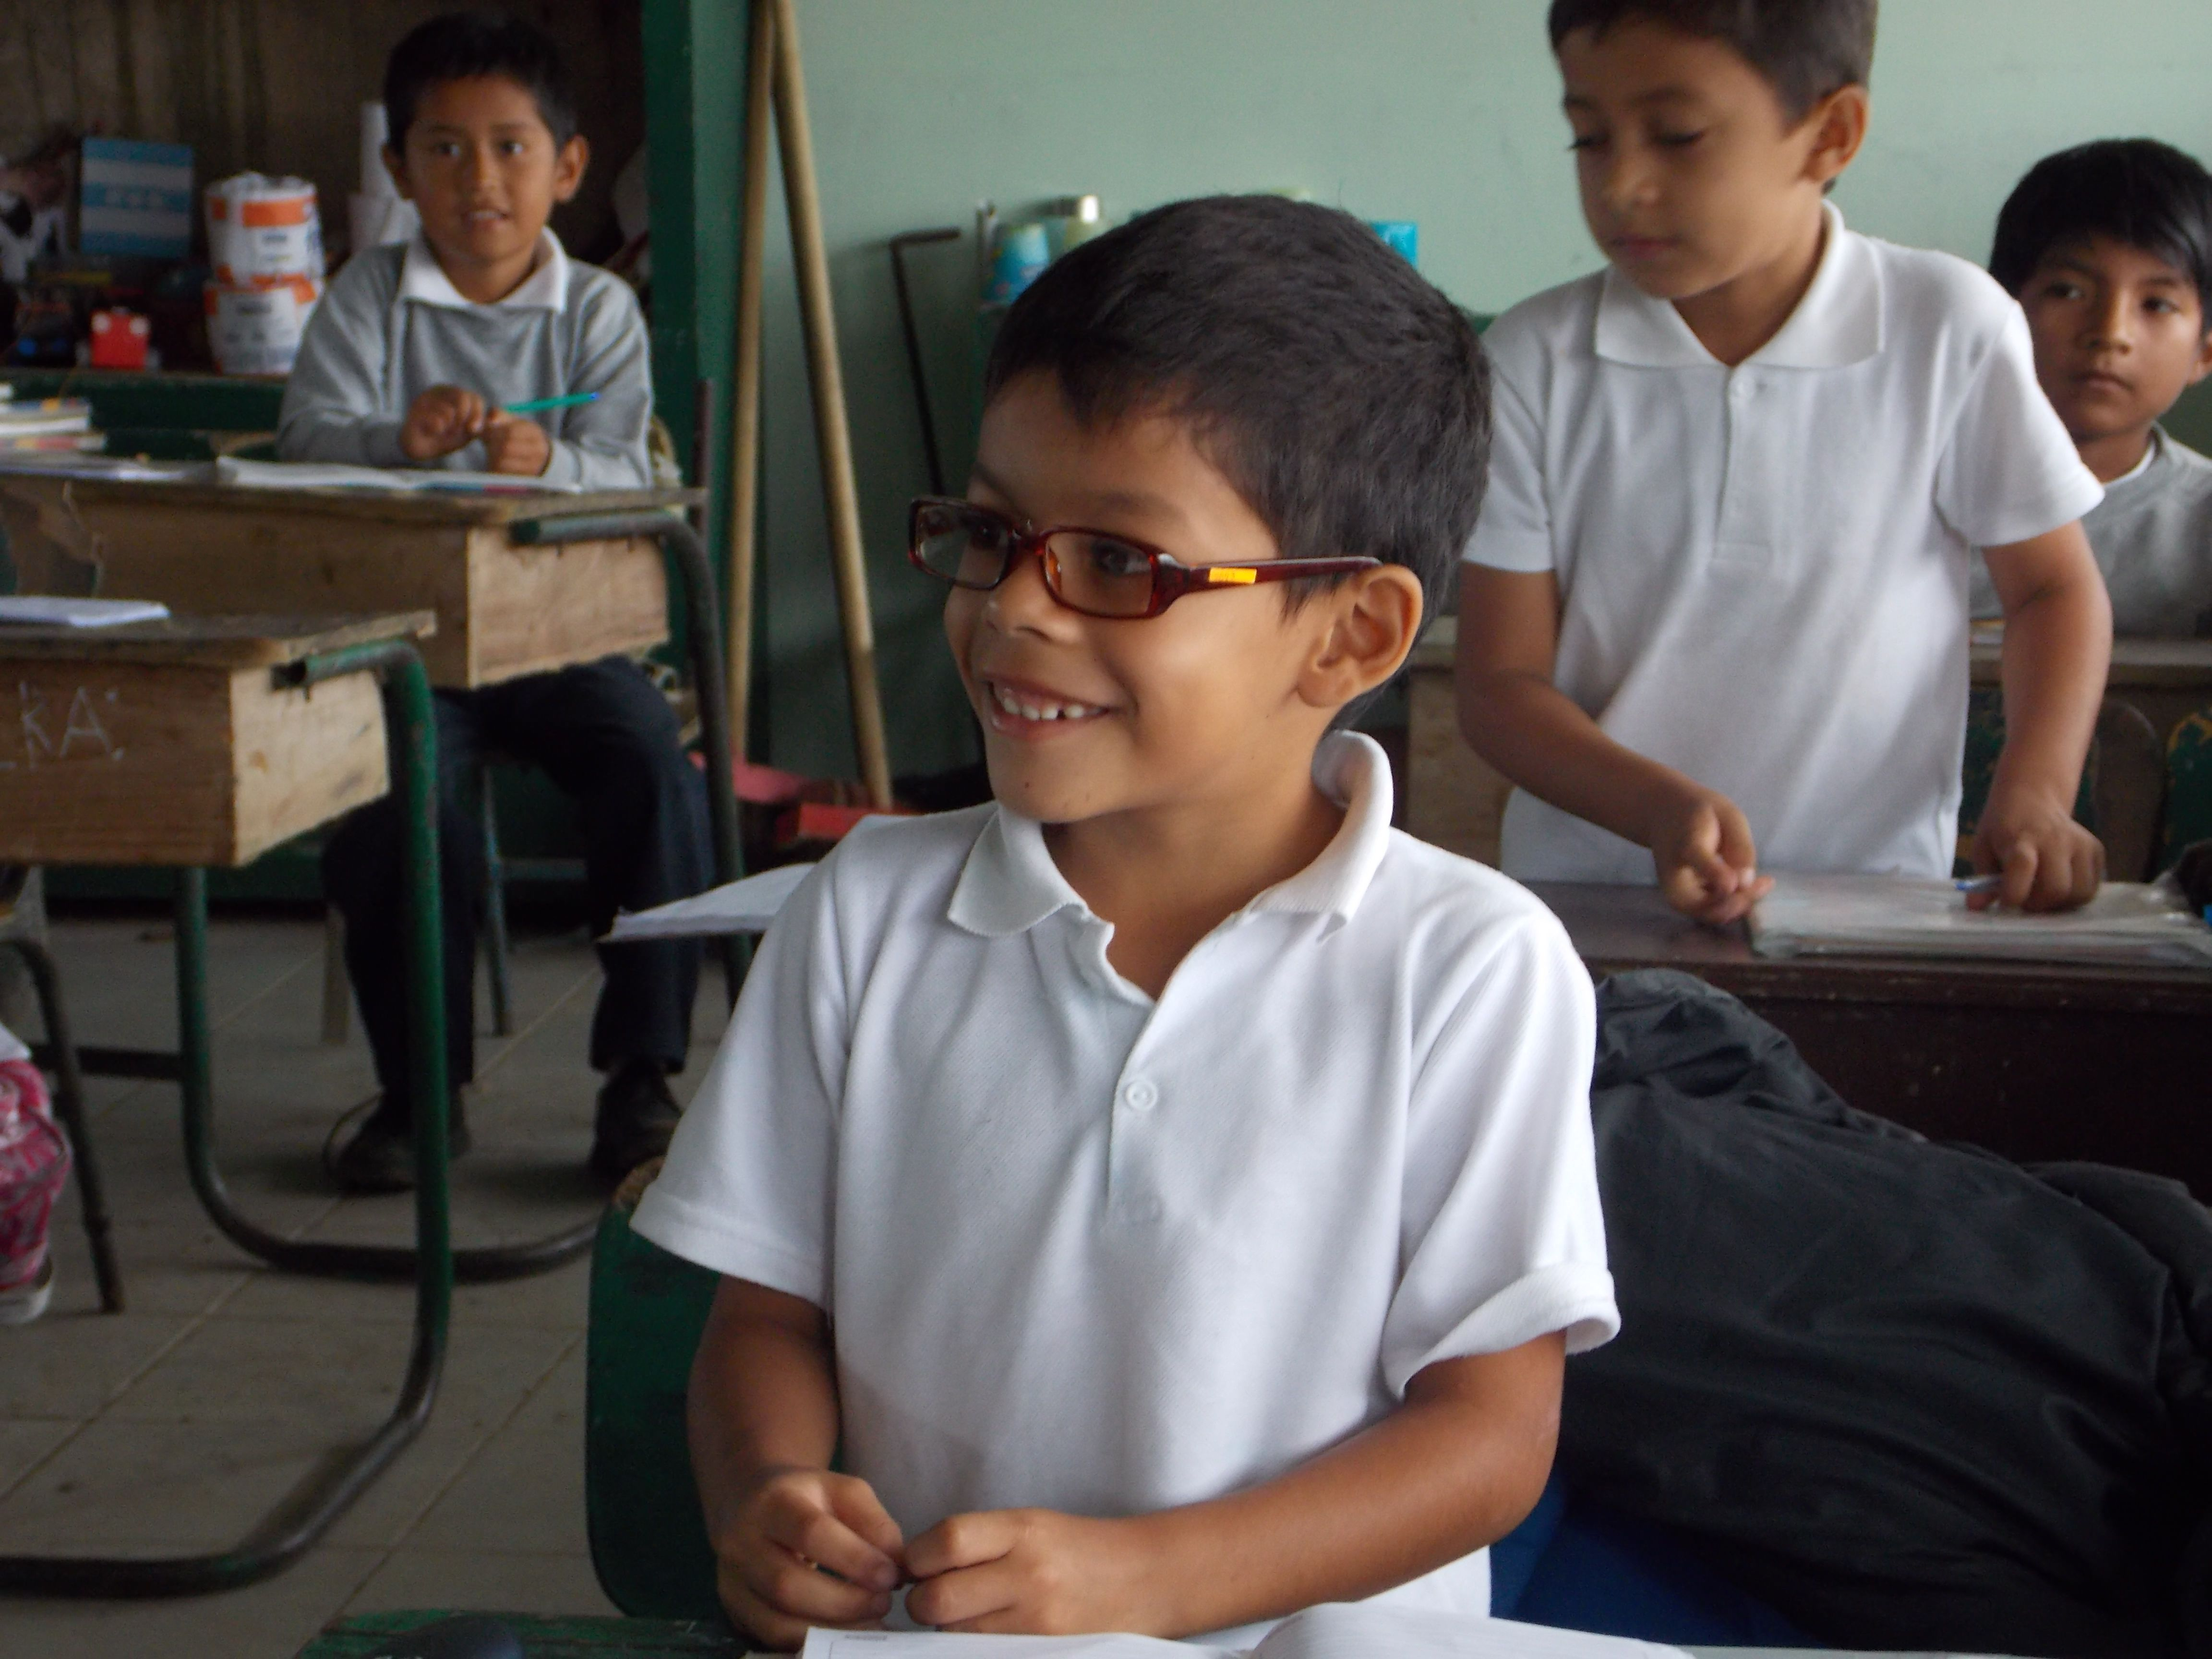 Giving spectacles to school children